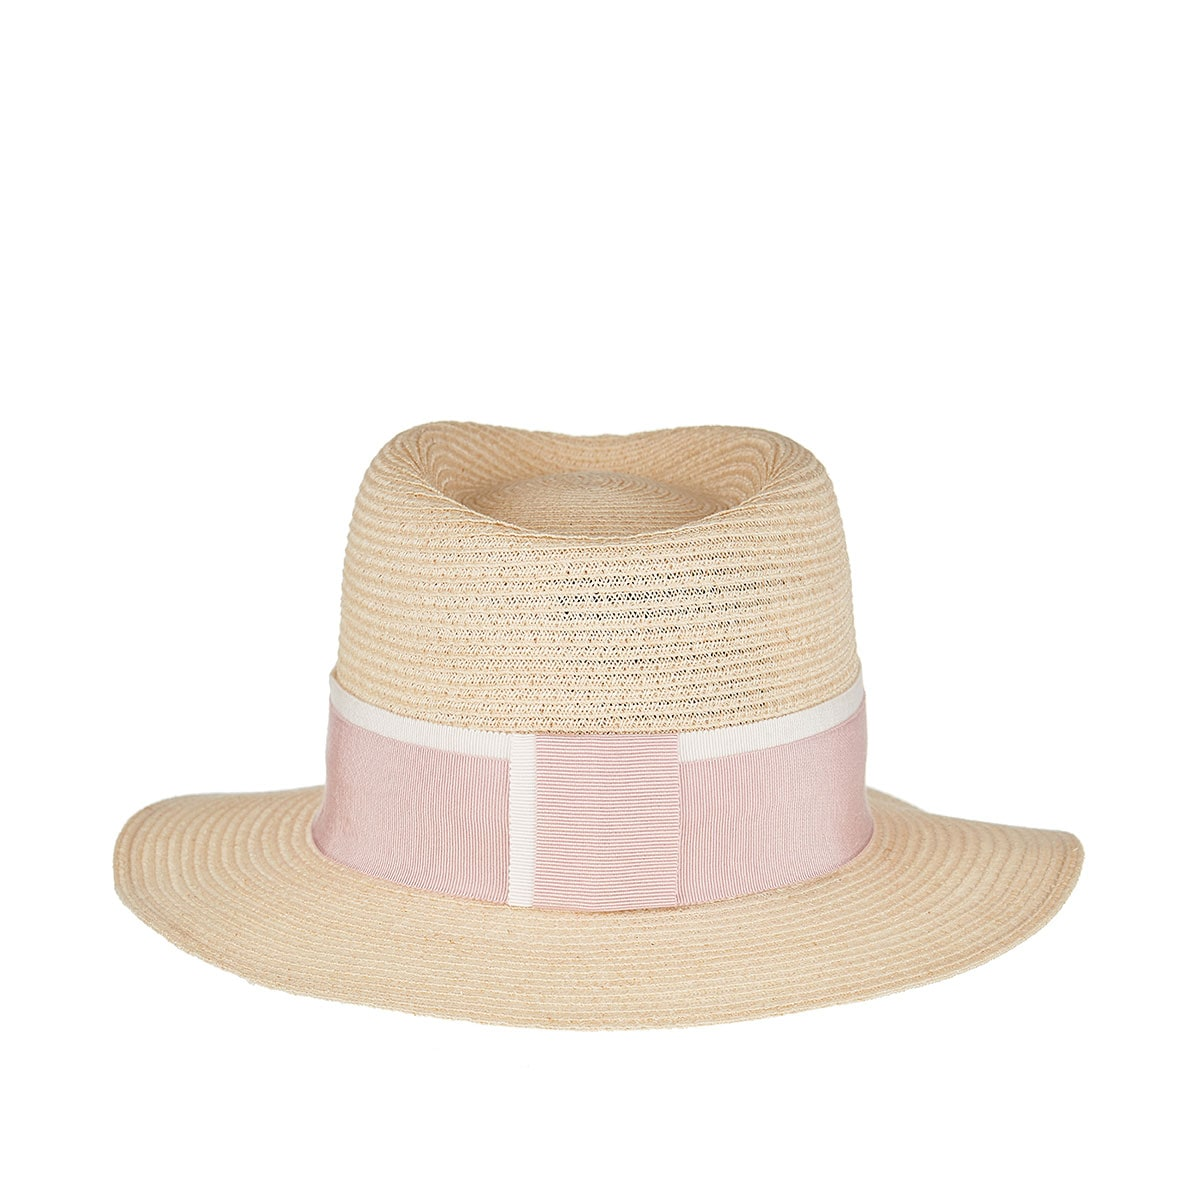 André straw trilby hat